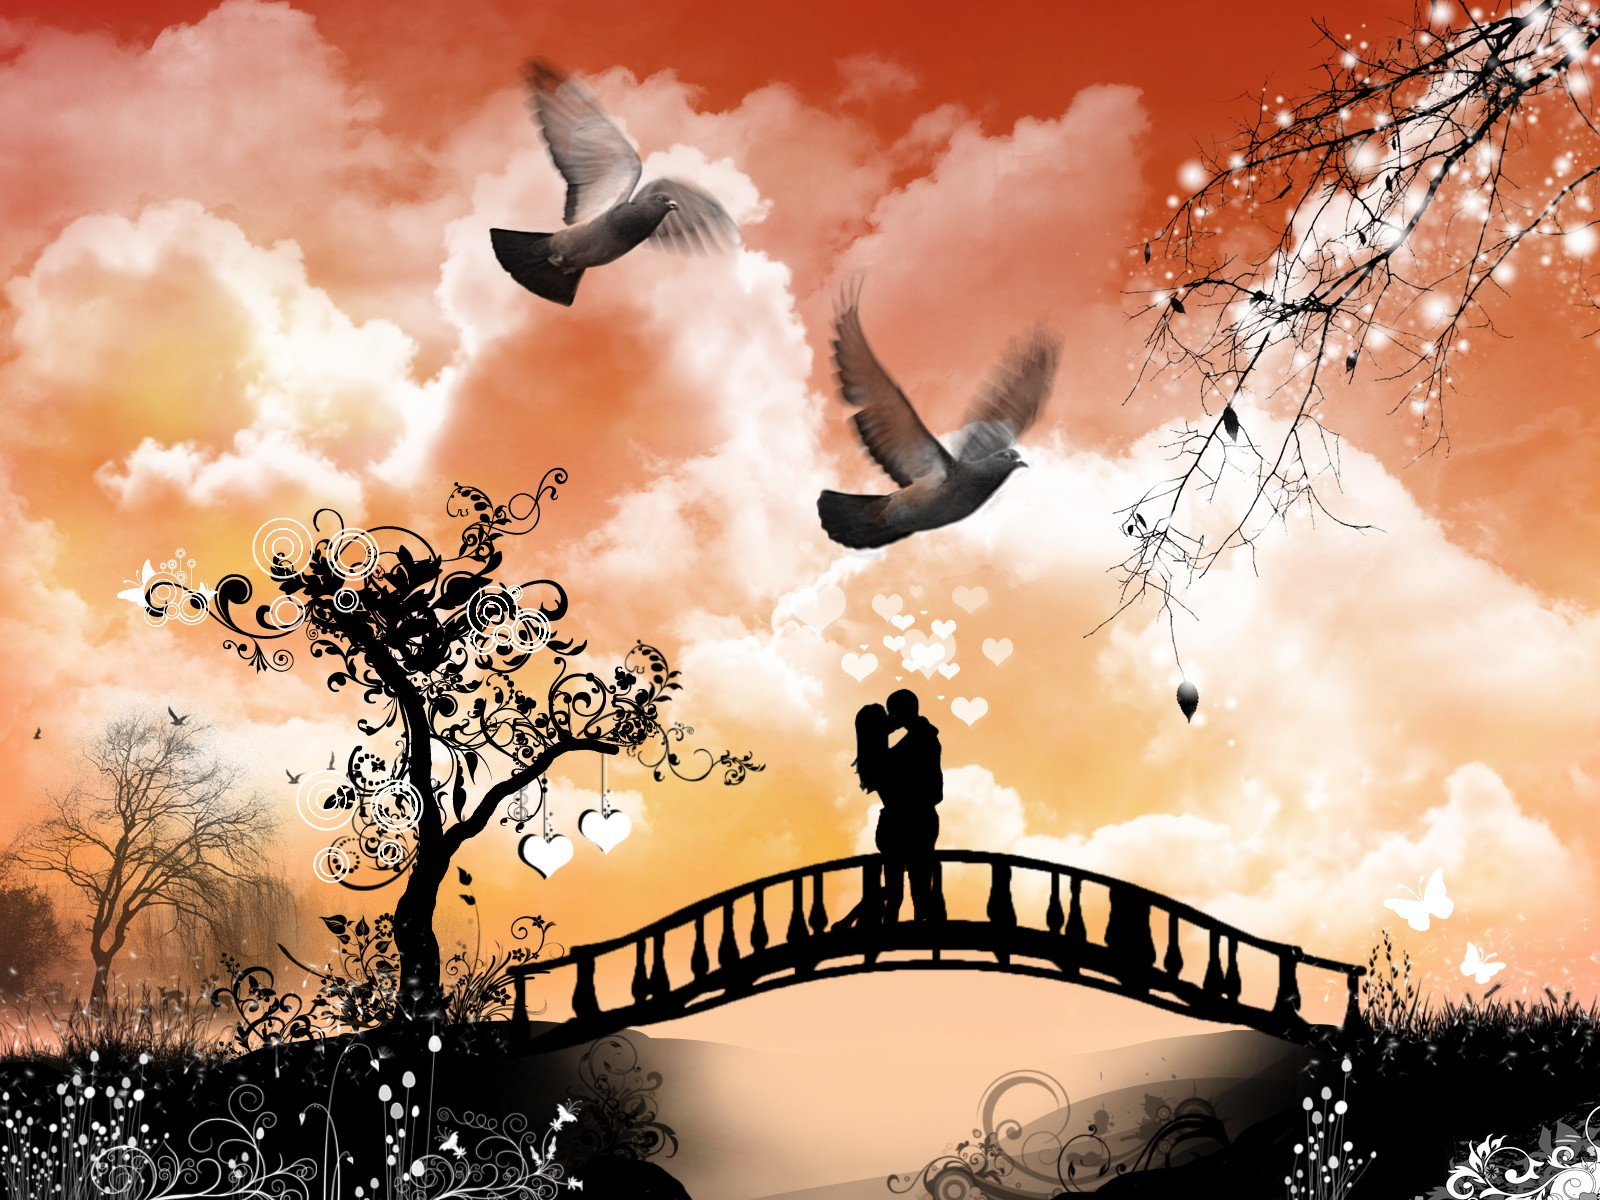 Wallpaper collection Romantic Love couple Kissing : Wallpaper collection Romantic Love couple kissing: Wallpaper Love Kiss